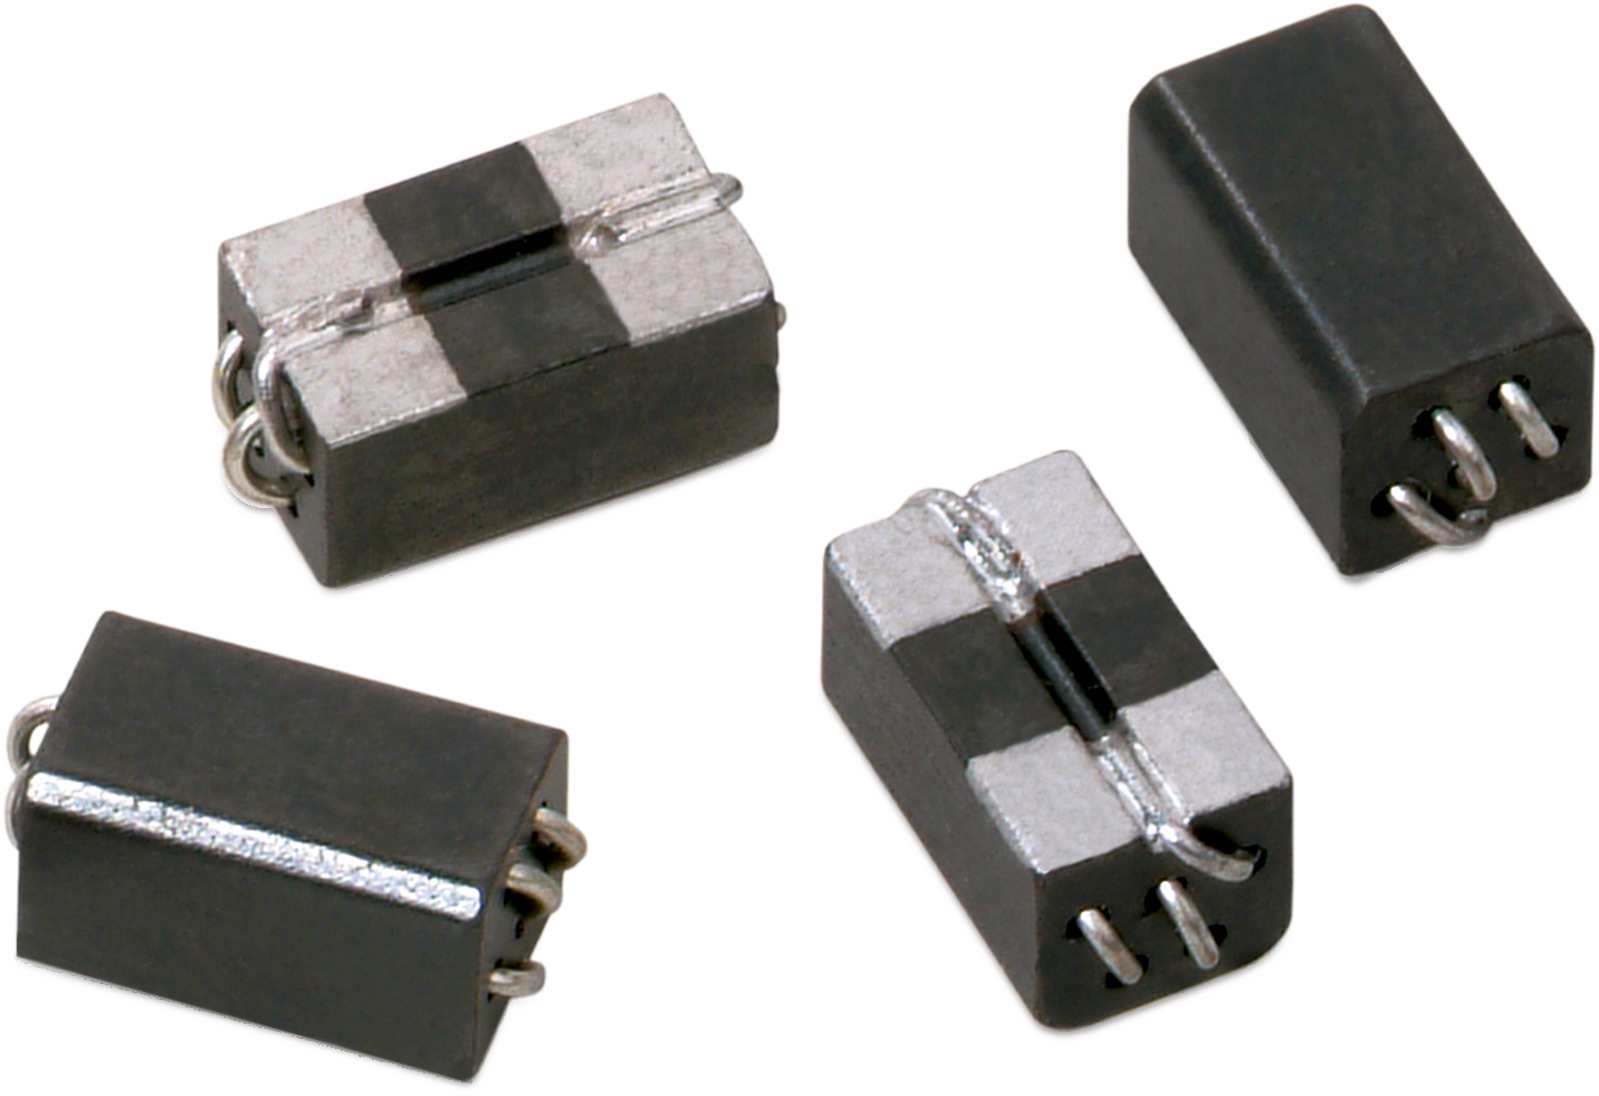 WE-SUKW SMT EMI Suppression 5-Hole Ferrite Bead Picture